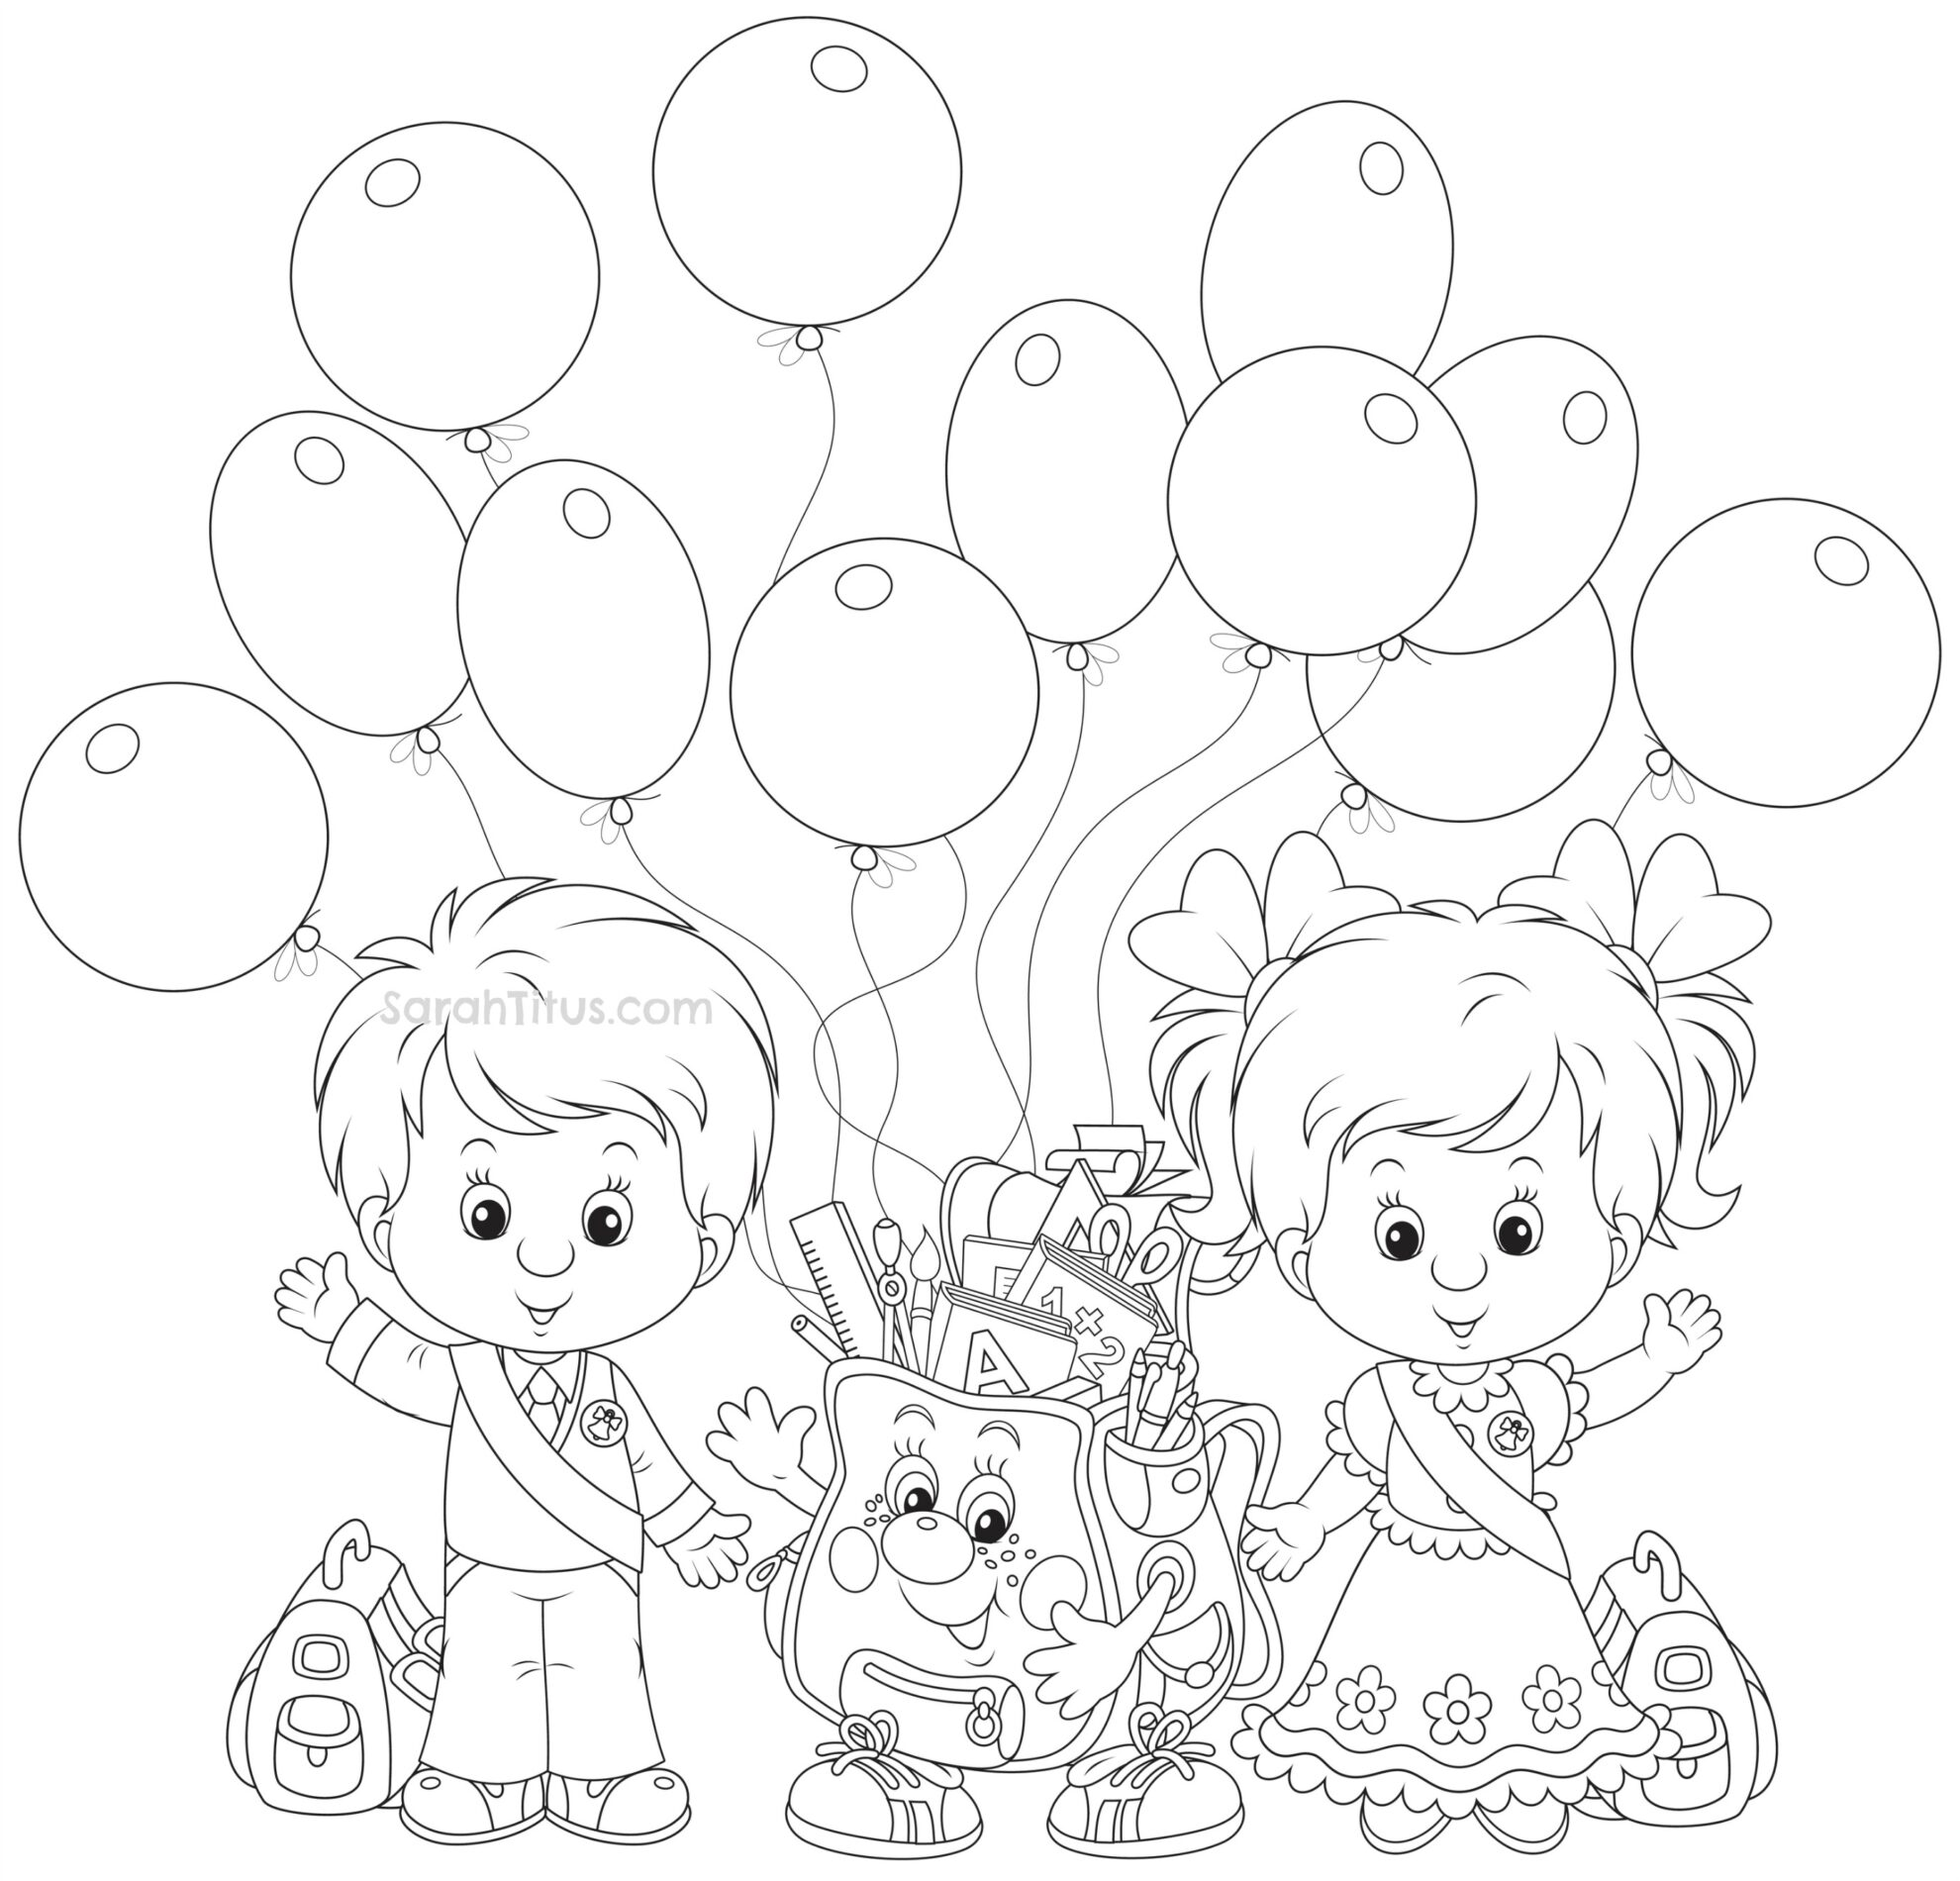 coloring school for kids school picture drawing at getdrawings free download school for kids coloring